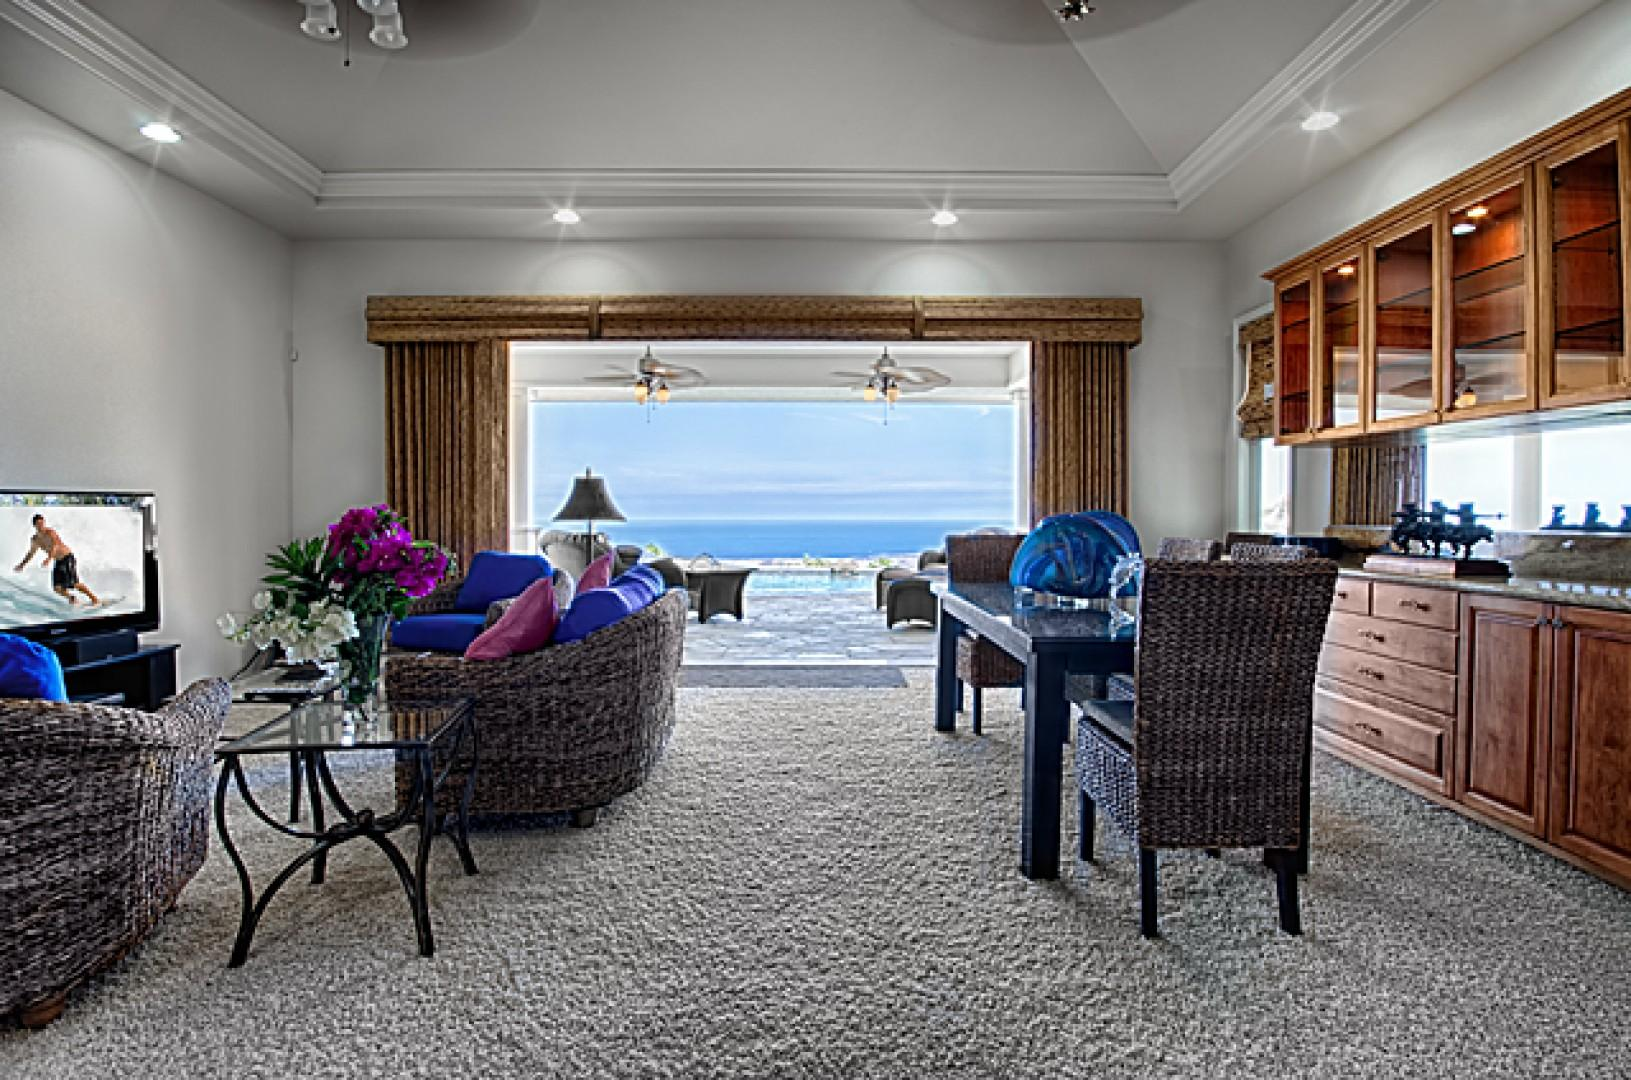 Enjoy the ocean view from this spacious living room!